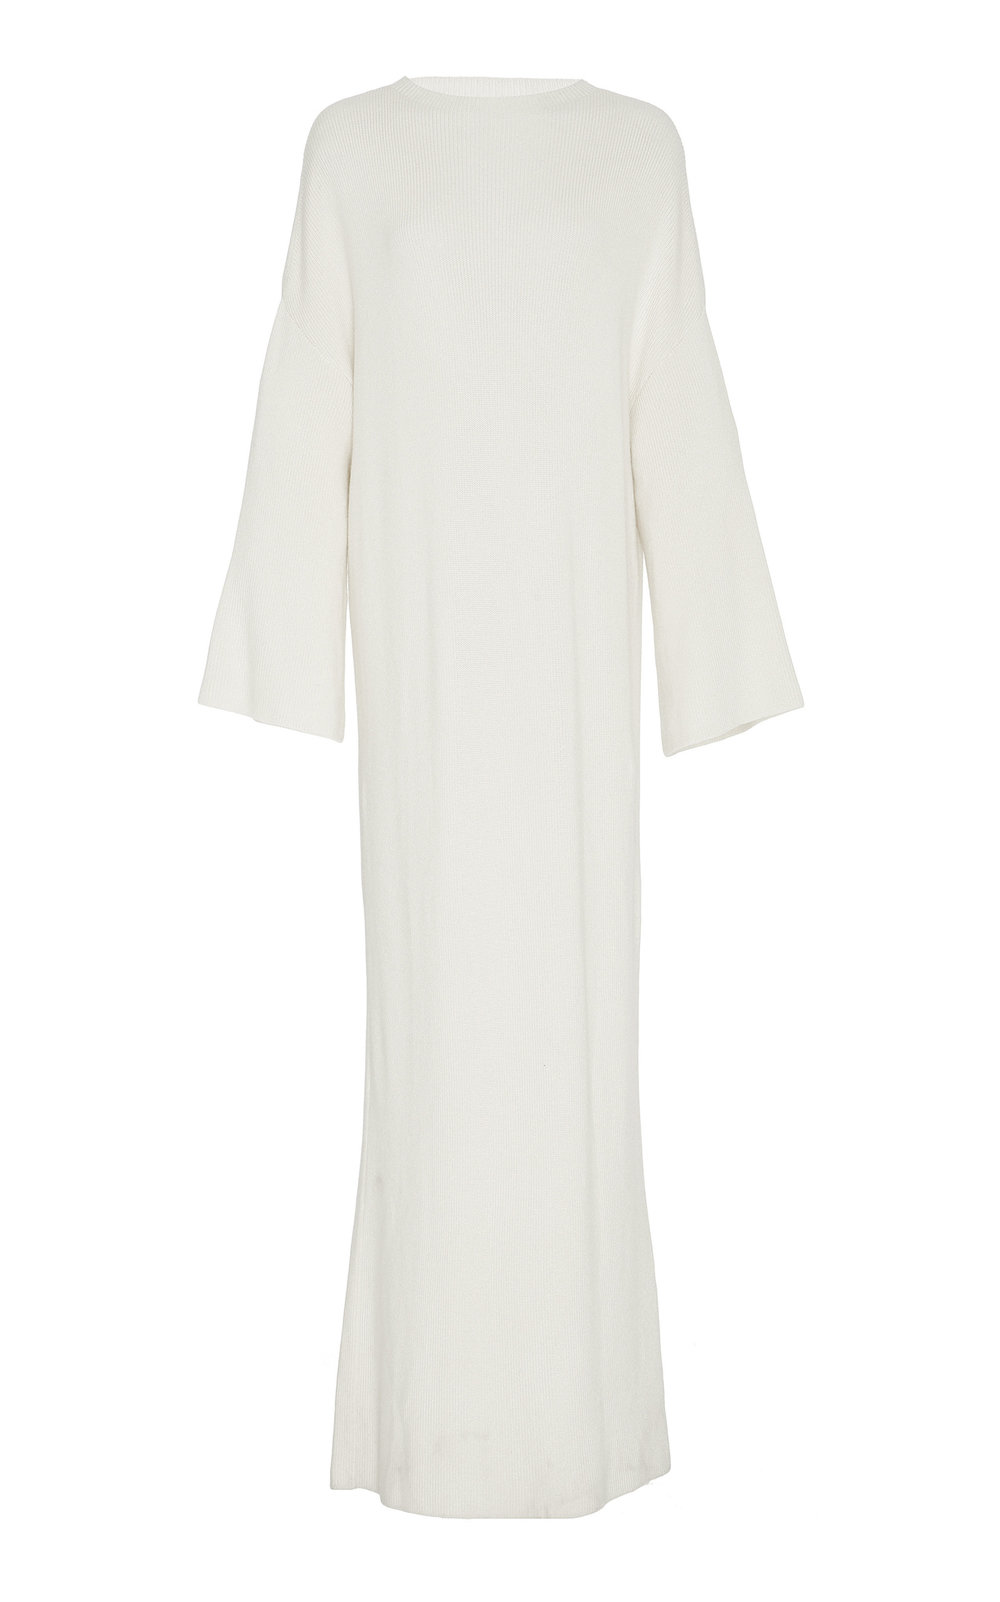 Solidaster Knitted Long Dress - IVORY  This long knitted dress is an autumn signature, spun from a blend of soft cashmere and silk.  Long flared sleeves and A-lined shape create a flattering silhouette. Wear yours with a tone-on-tone belt to accentuate the feminine shape.